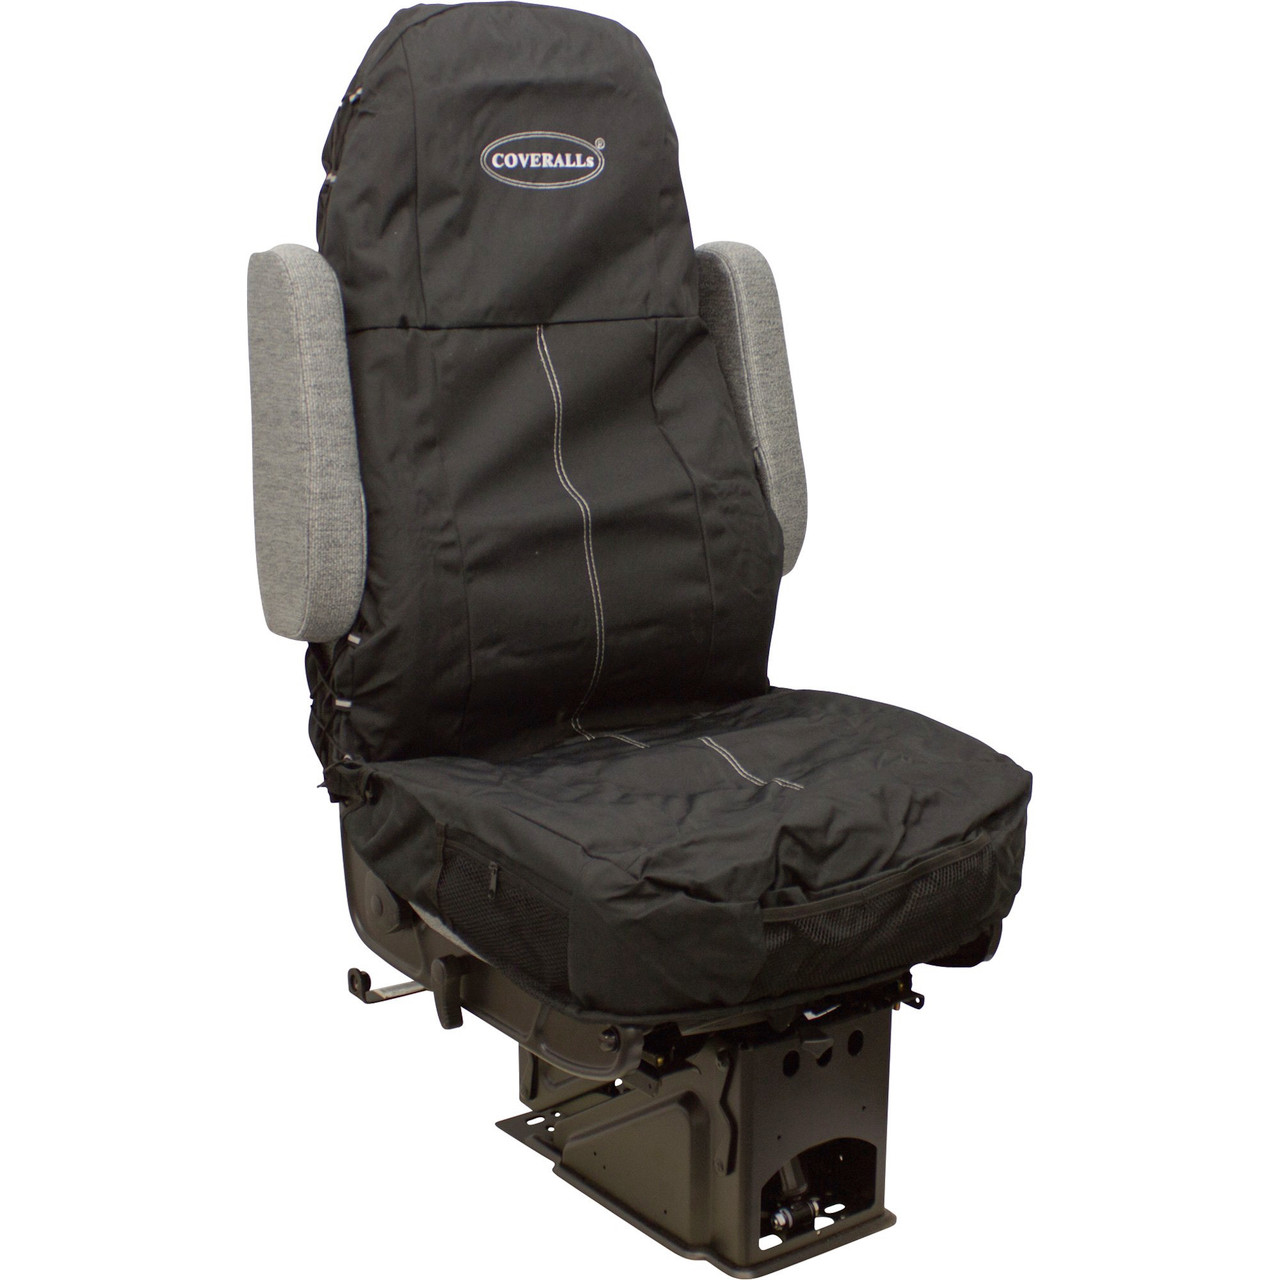 1 Black Quilted Diamond Leather Rhinos-Autostyling FOR IVECO DAILY ALL YEARS Premium Van Seat Covers Single Drivers And Double Passengers Seat Covers 2